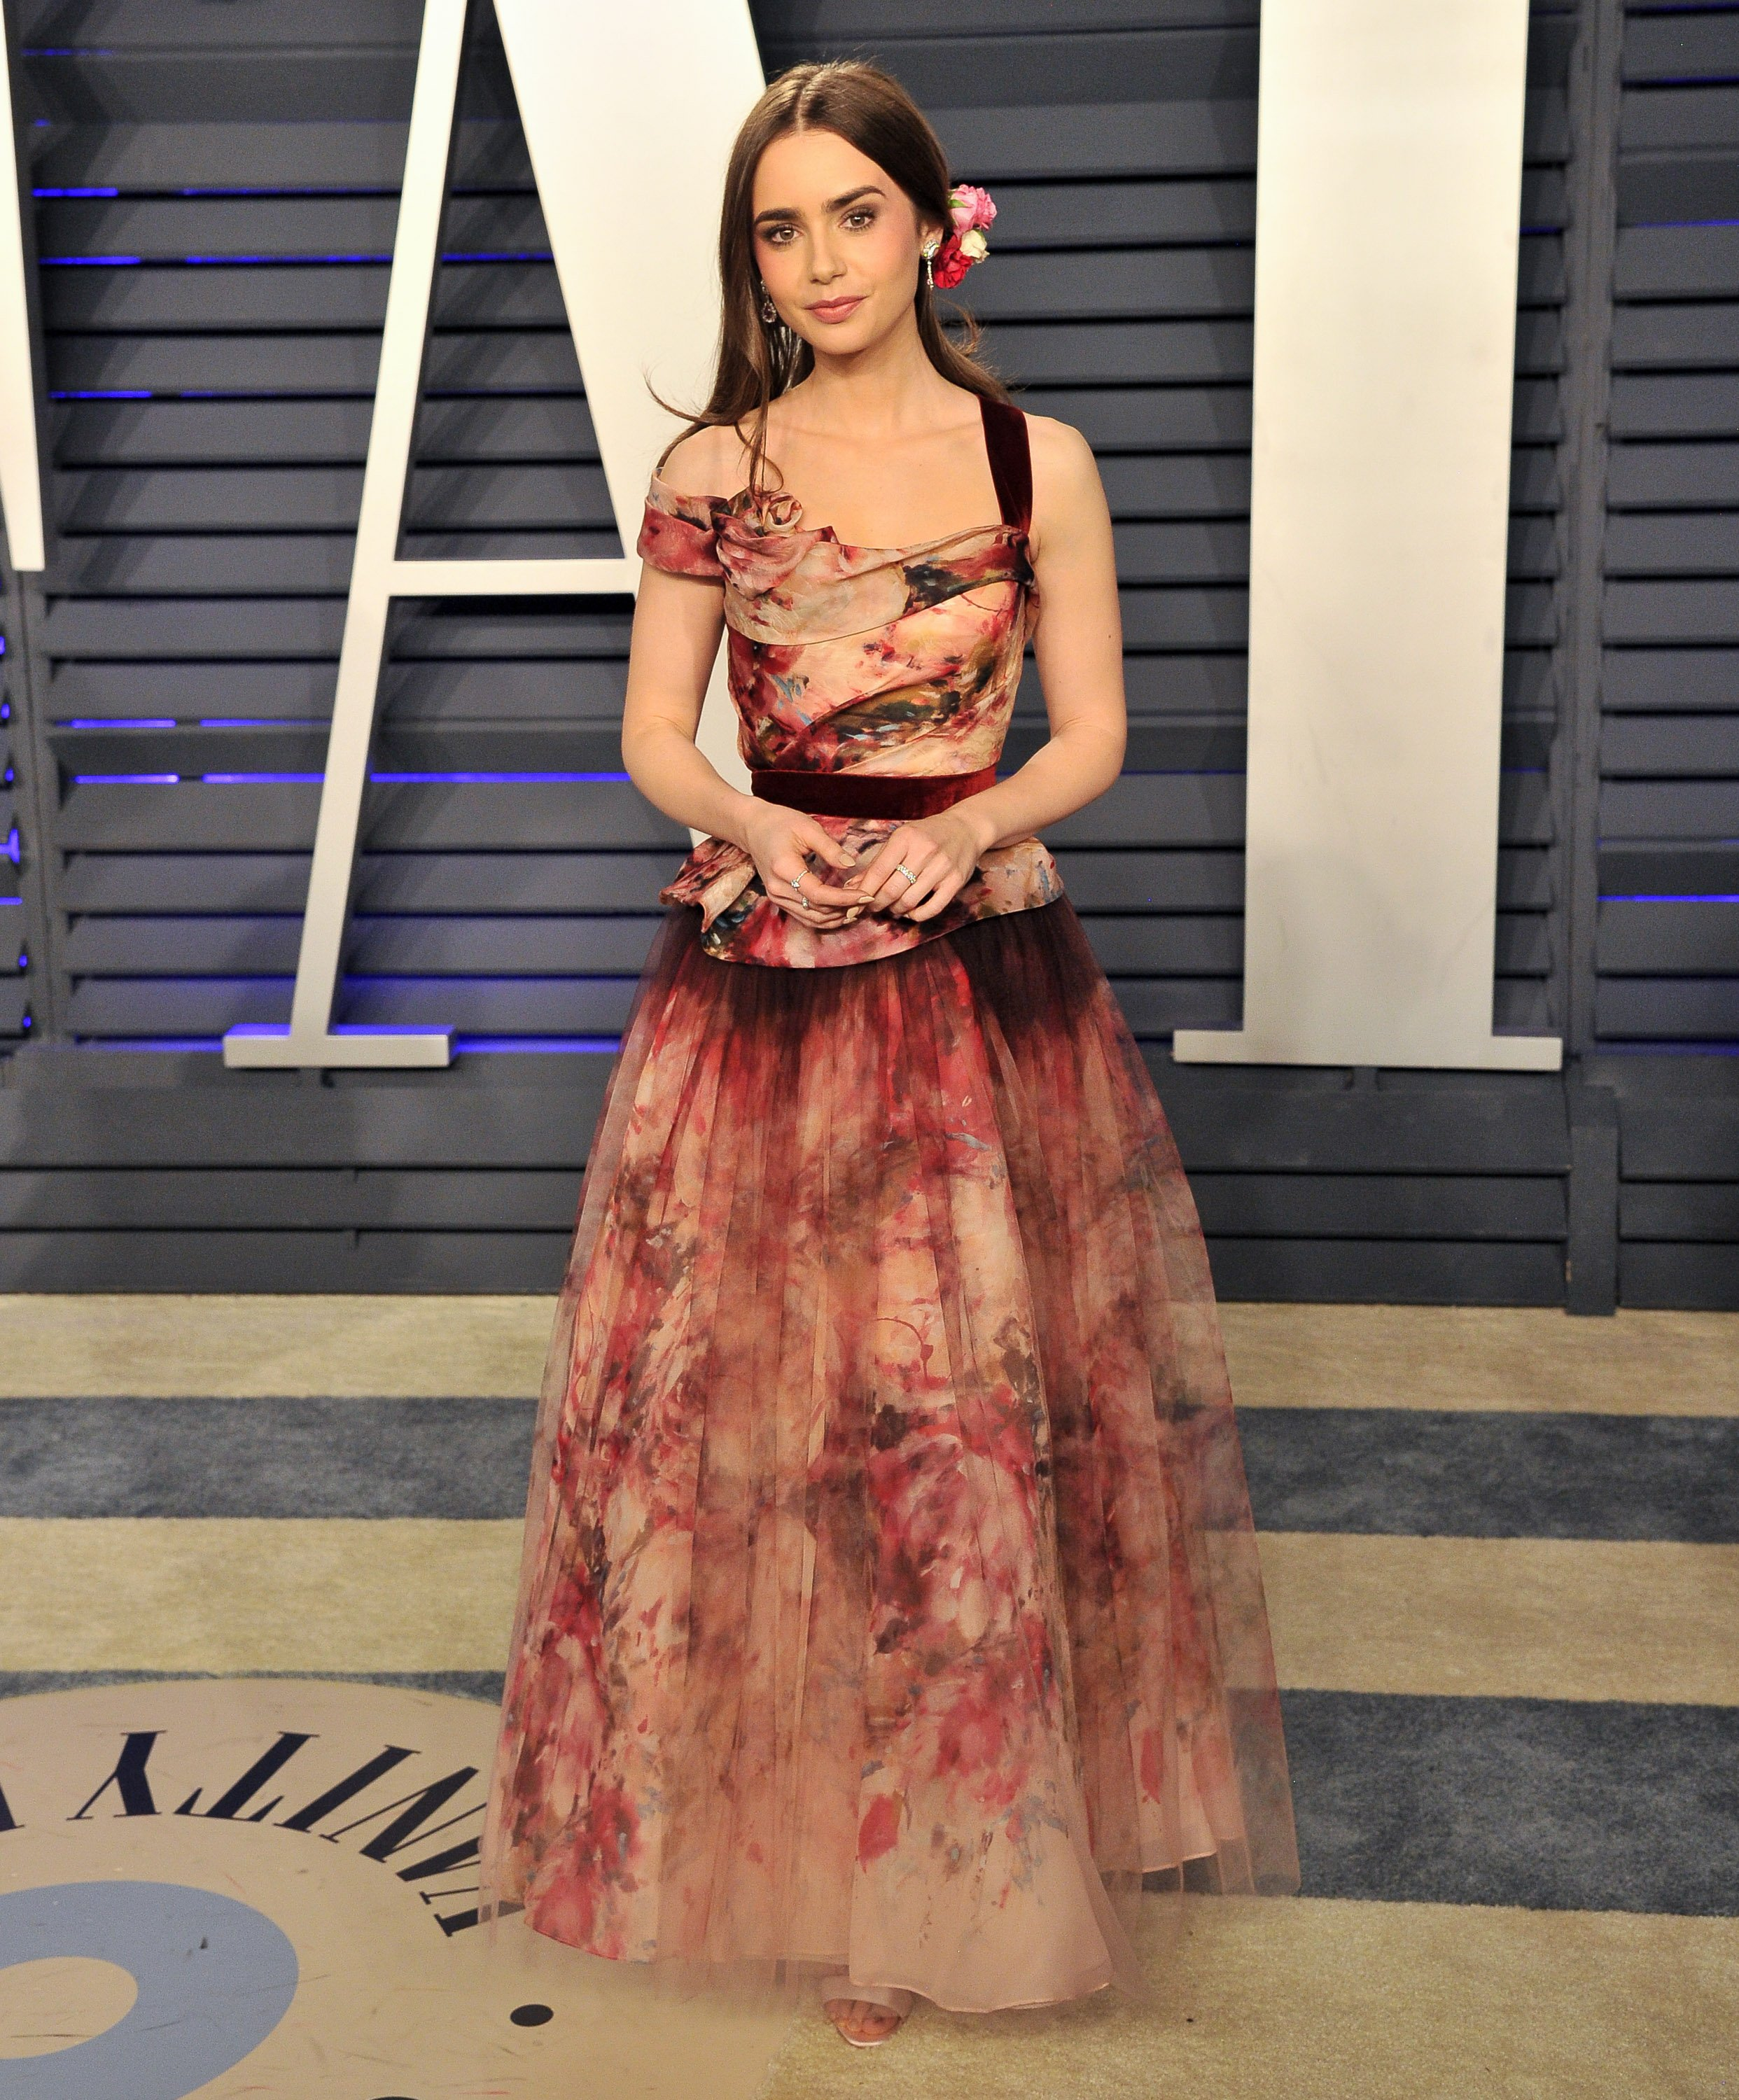 Lily Collins attends the 2019 Vanity Fair Oscar Party on February 24, 2019 in Beverly Hills, California. | Photo: Getty Images